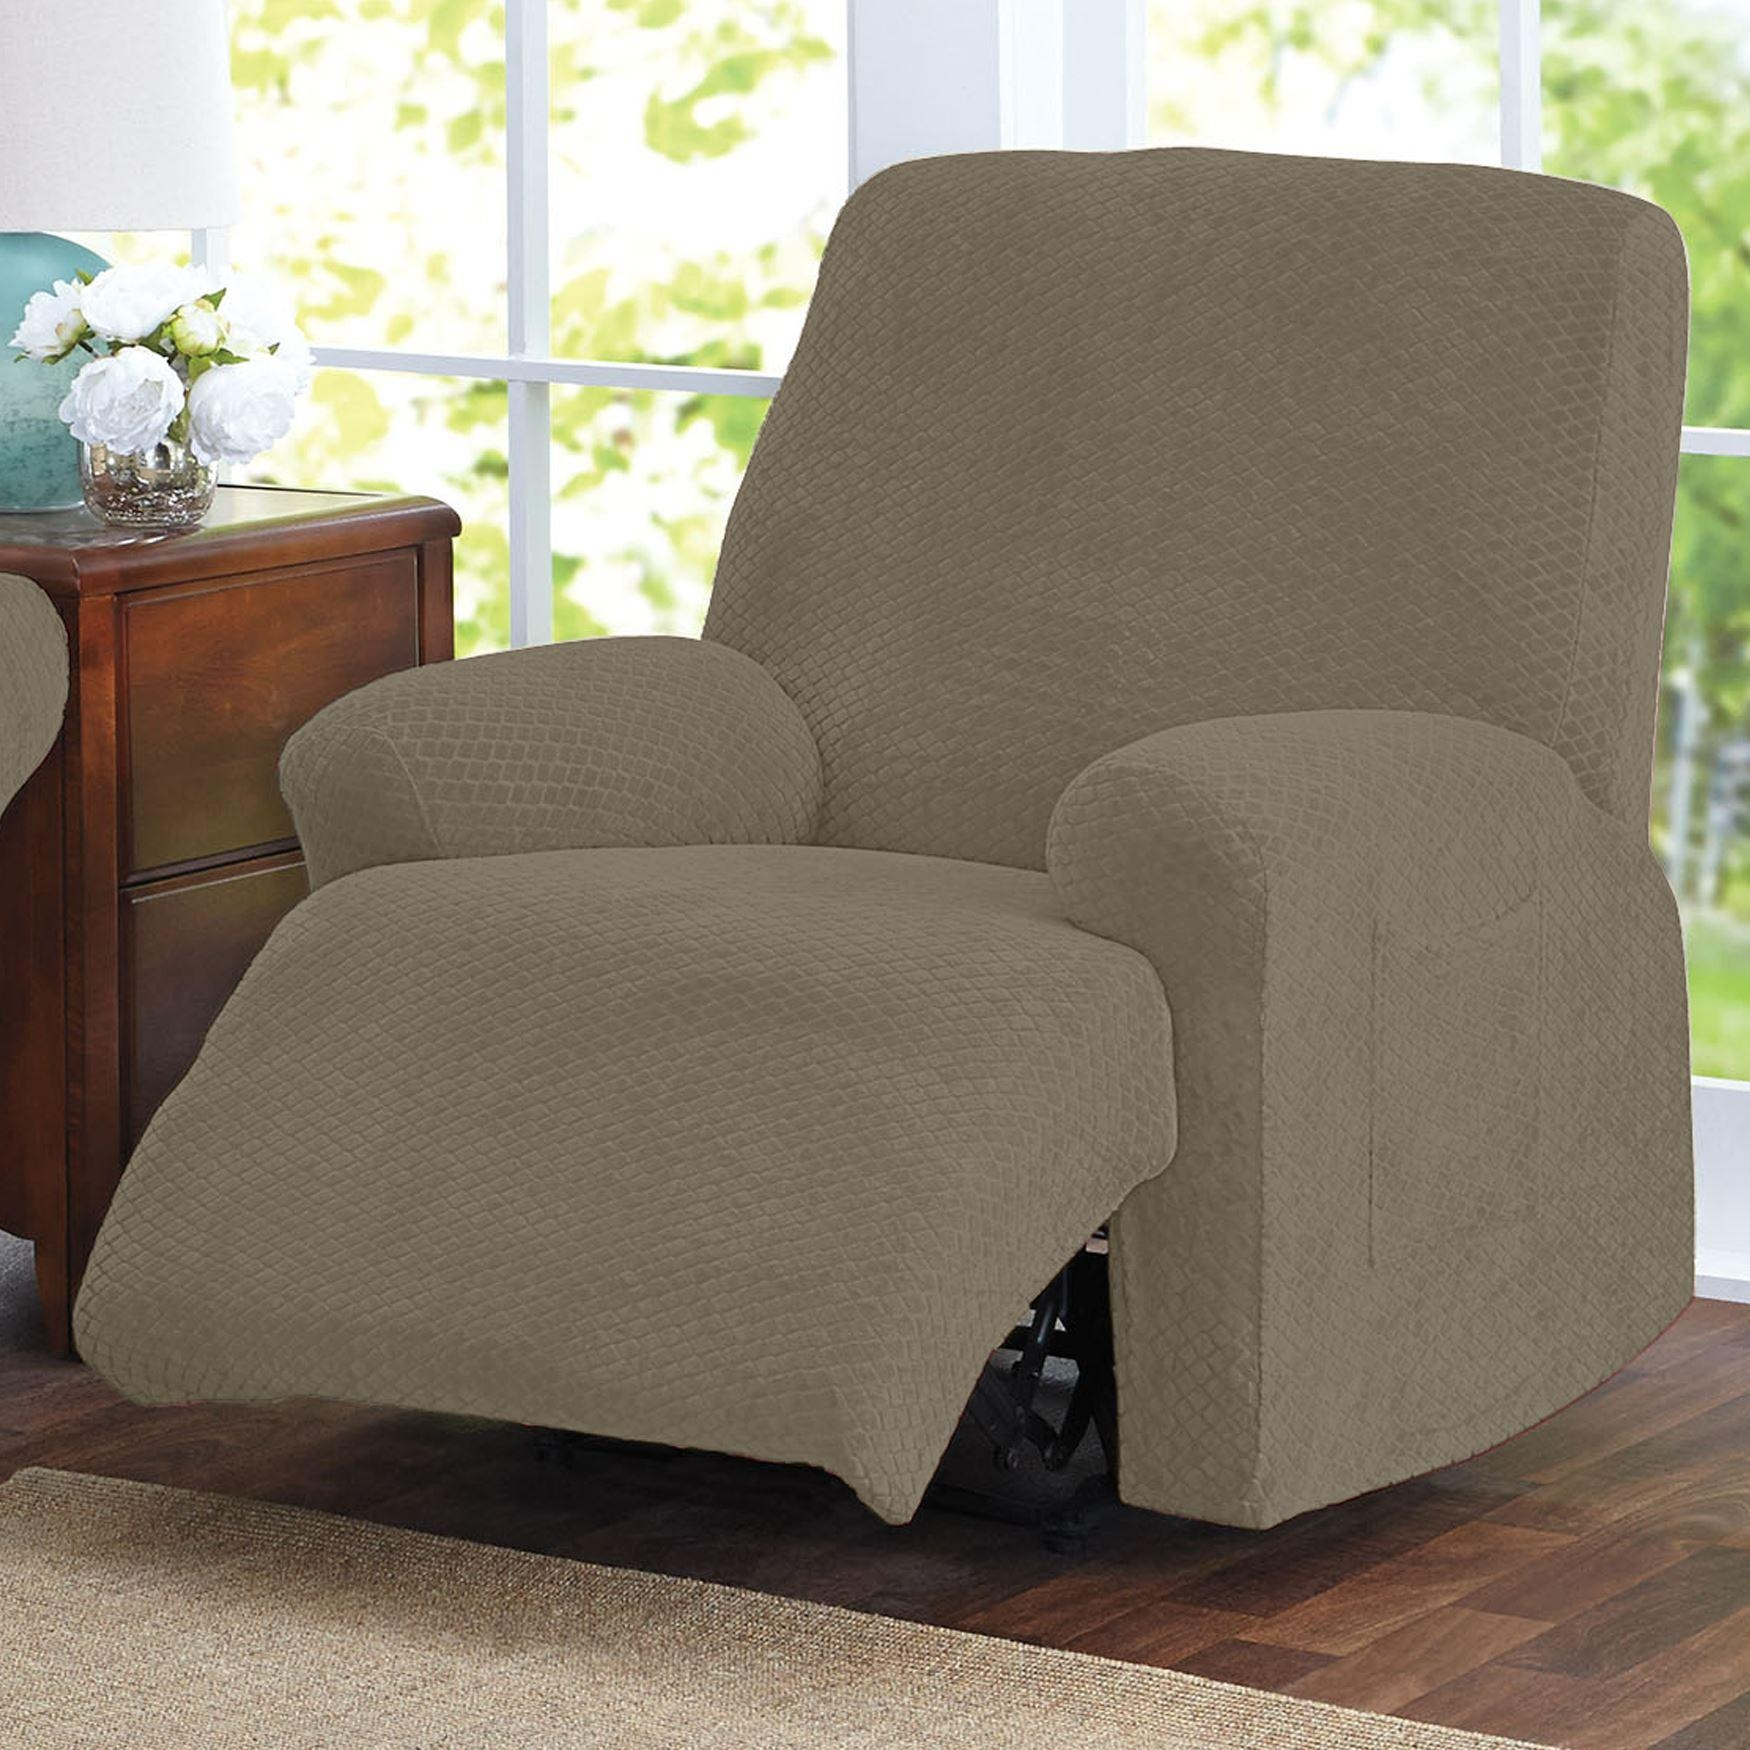 Brylanehome® Studio Stretch Diamond Recliner Slipcover | Recliner Within Stretch Covers For Recliners (View 7 of 20)